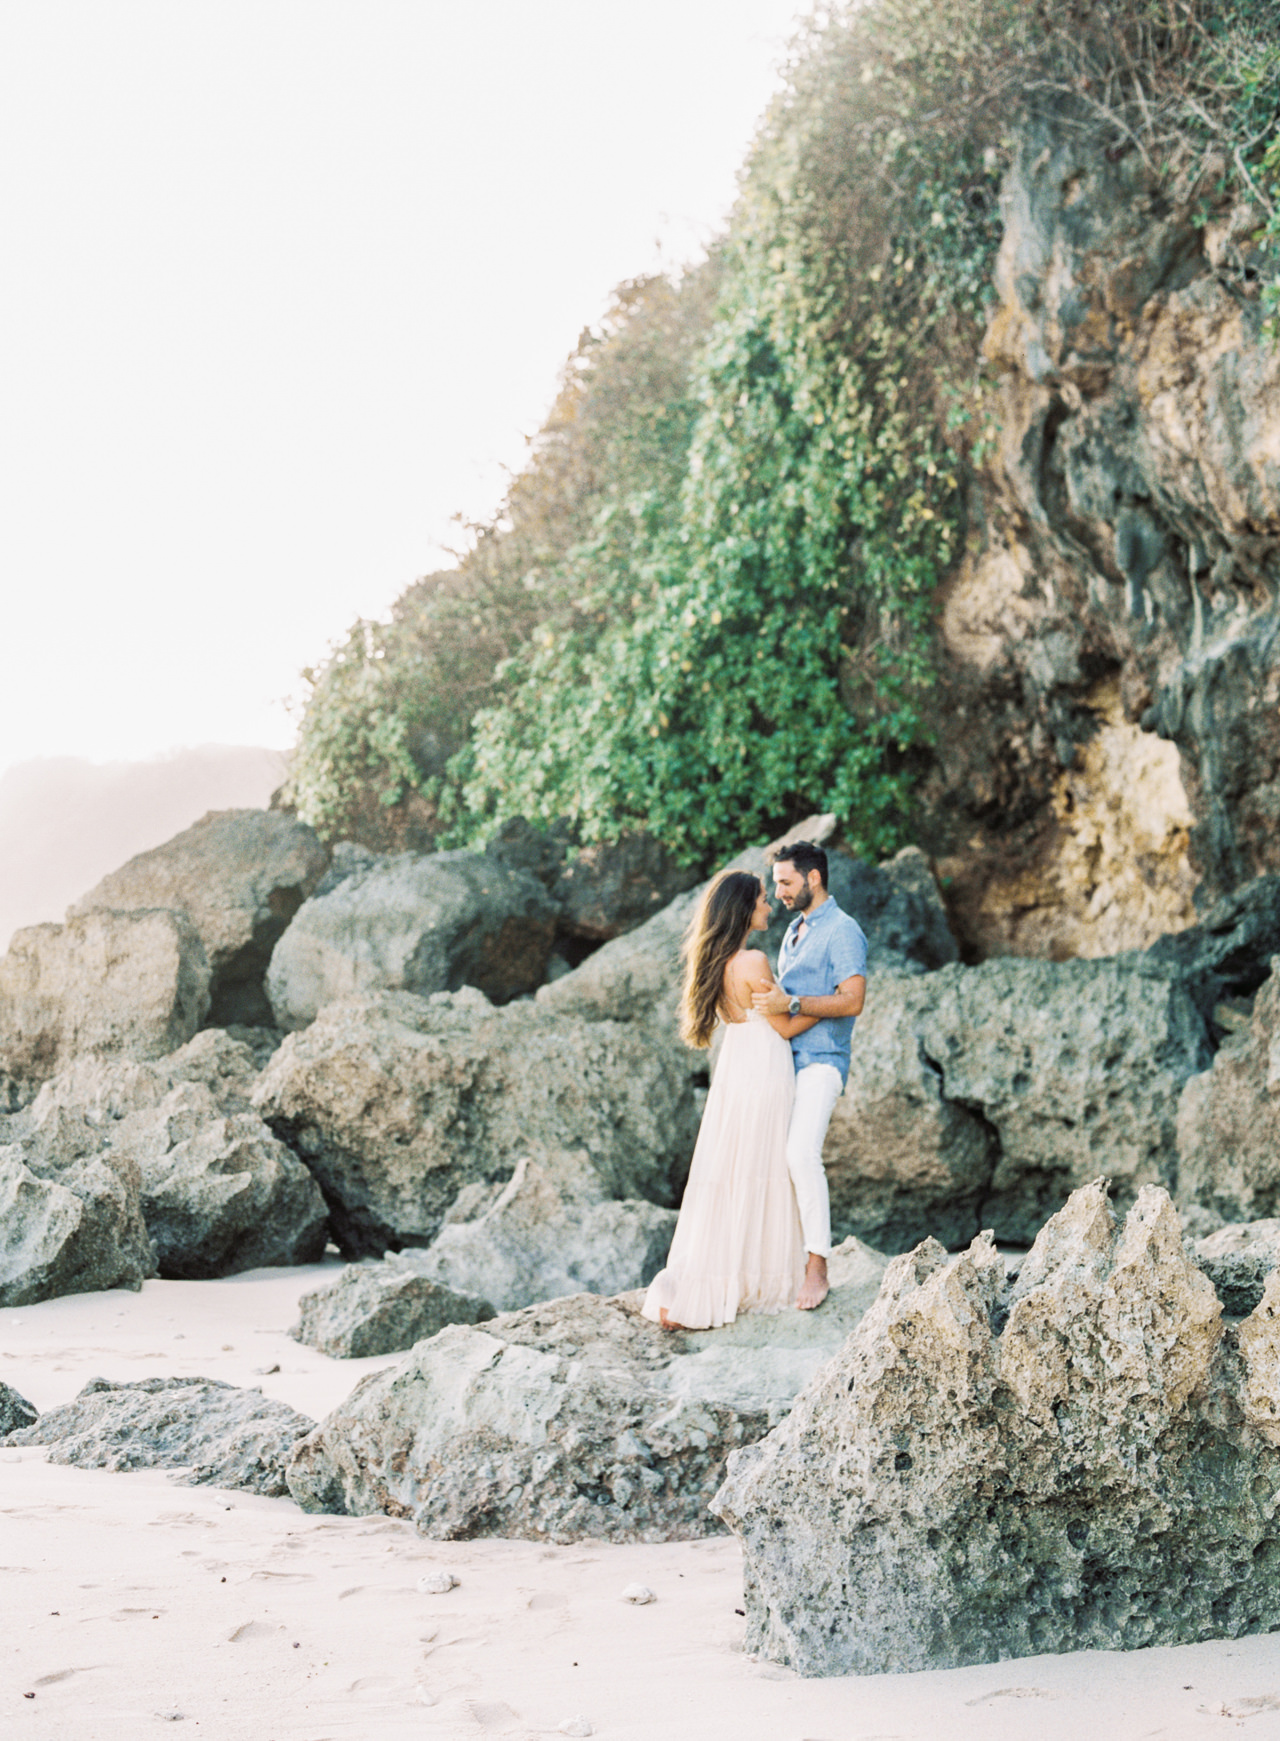 E&S: Romantic Bali Honeymoon Photography 11